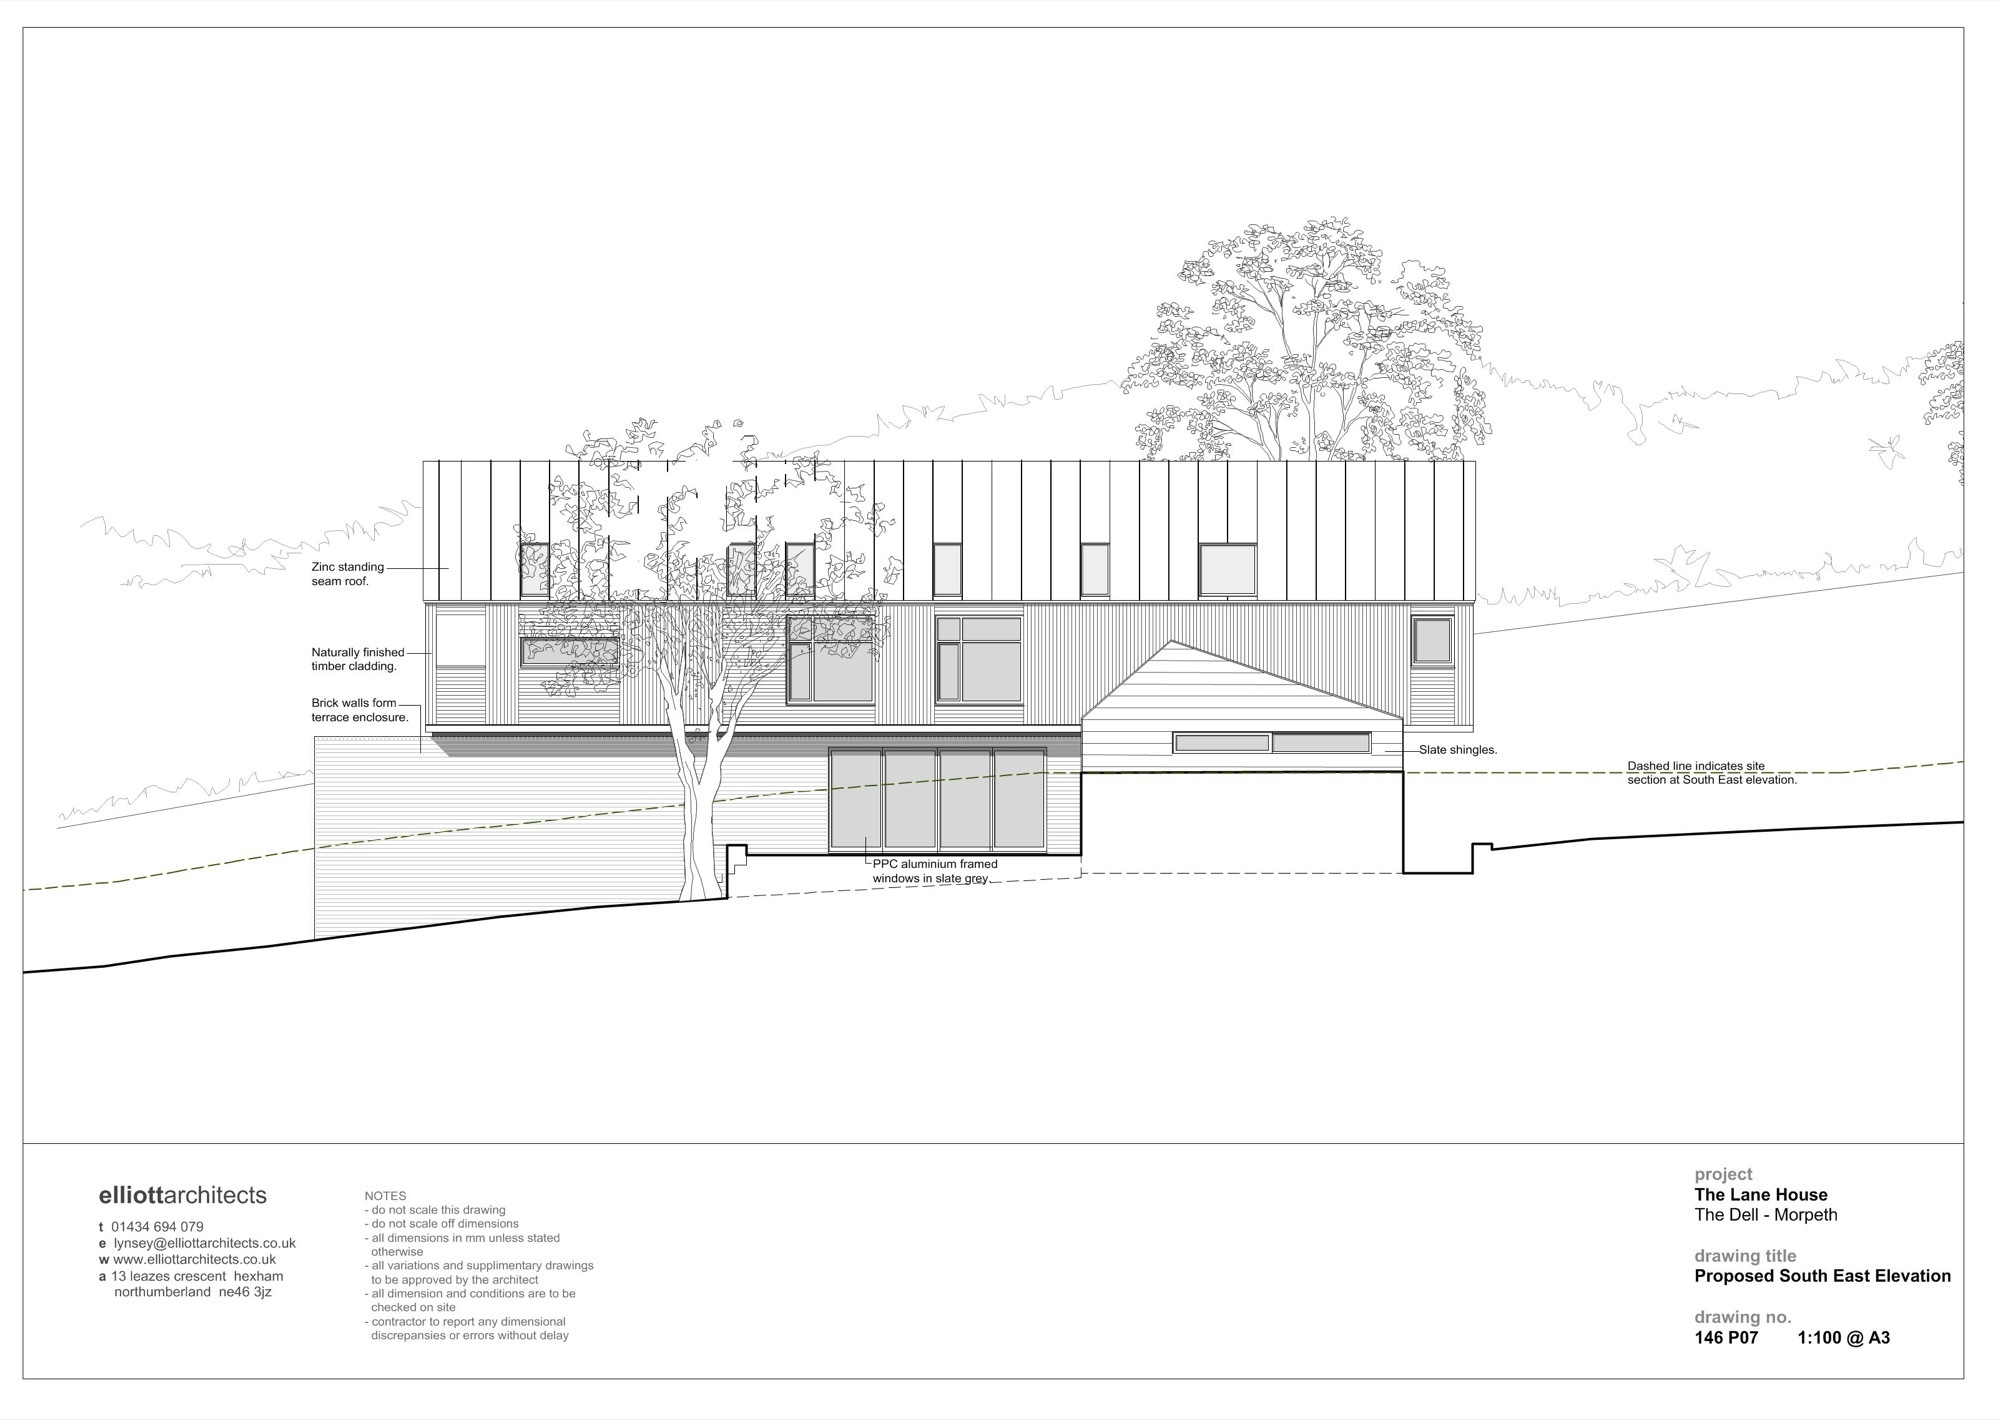 Gallery Of The Dell Elliott Architects 21